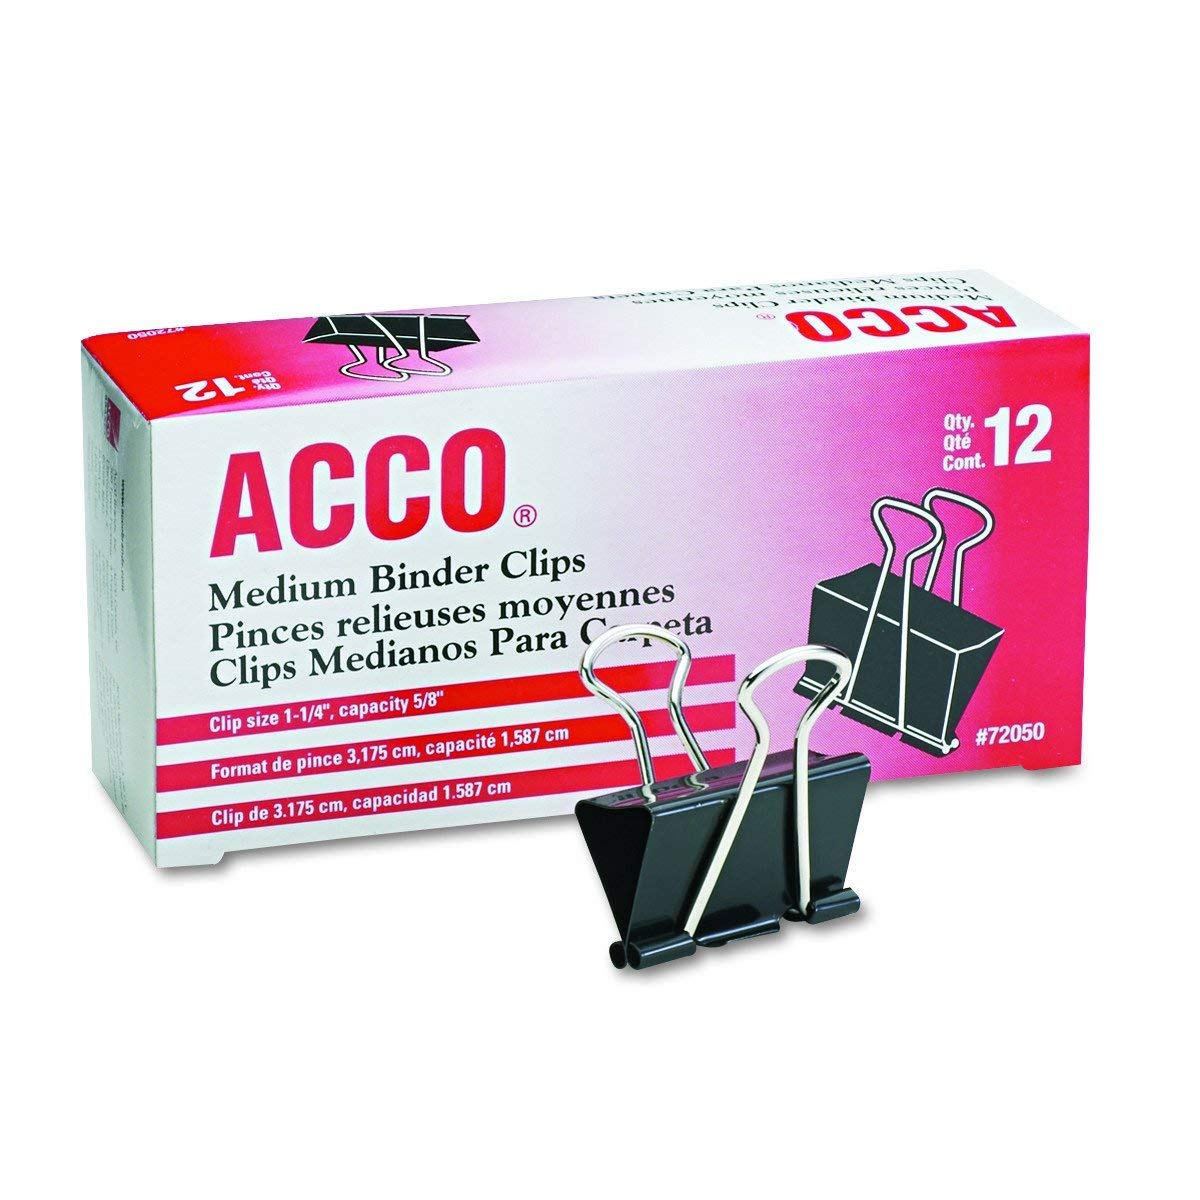 ACCO Binder Clips, Medium, 1 Box, 12 Clips/Box (72050), Pack of 10 by ACCO Brands